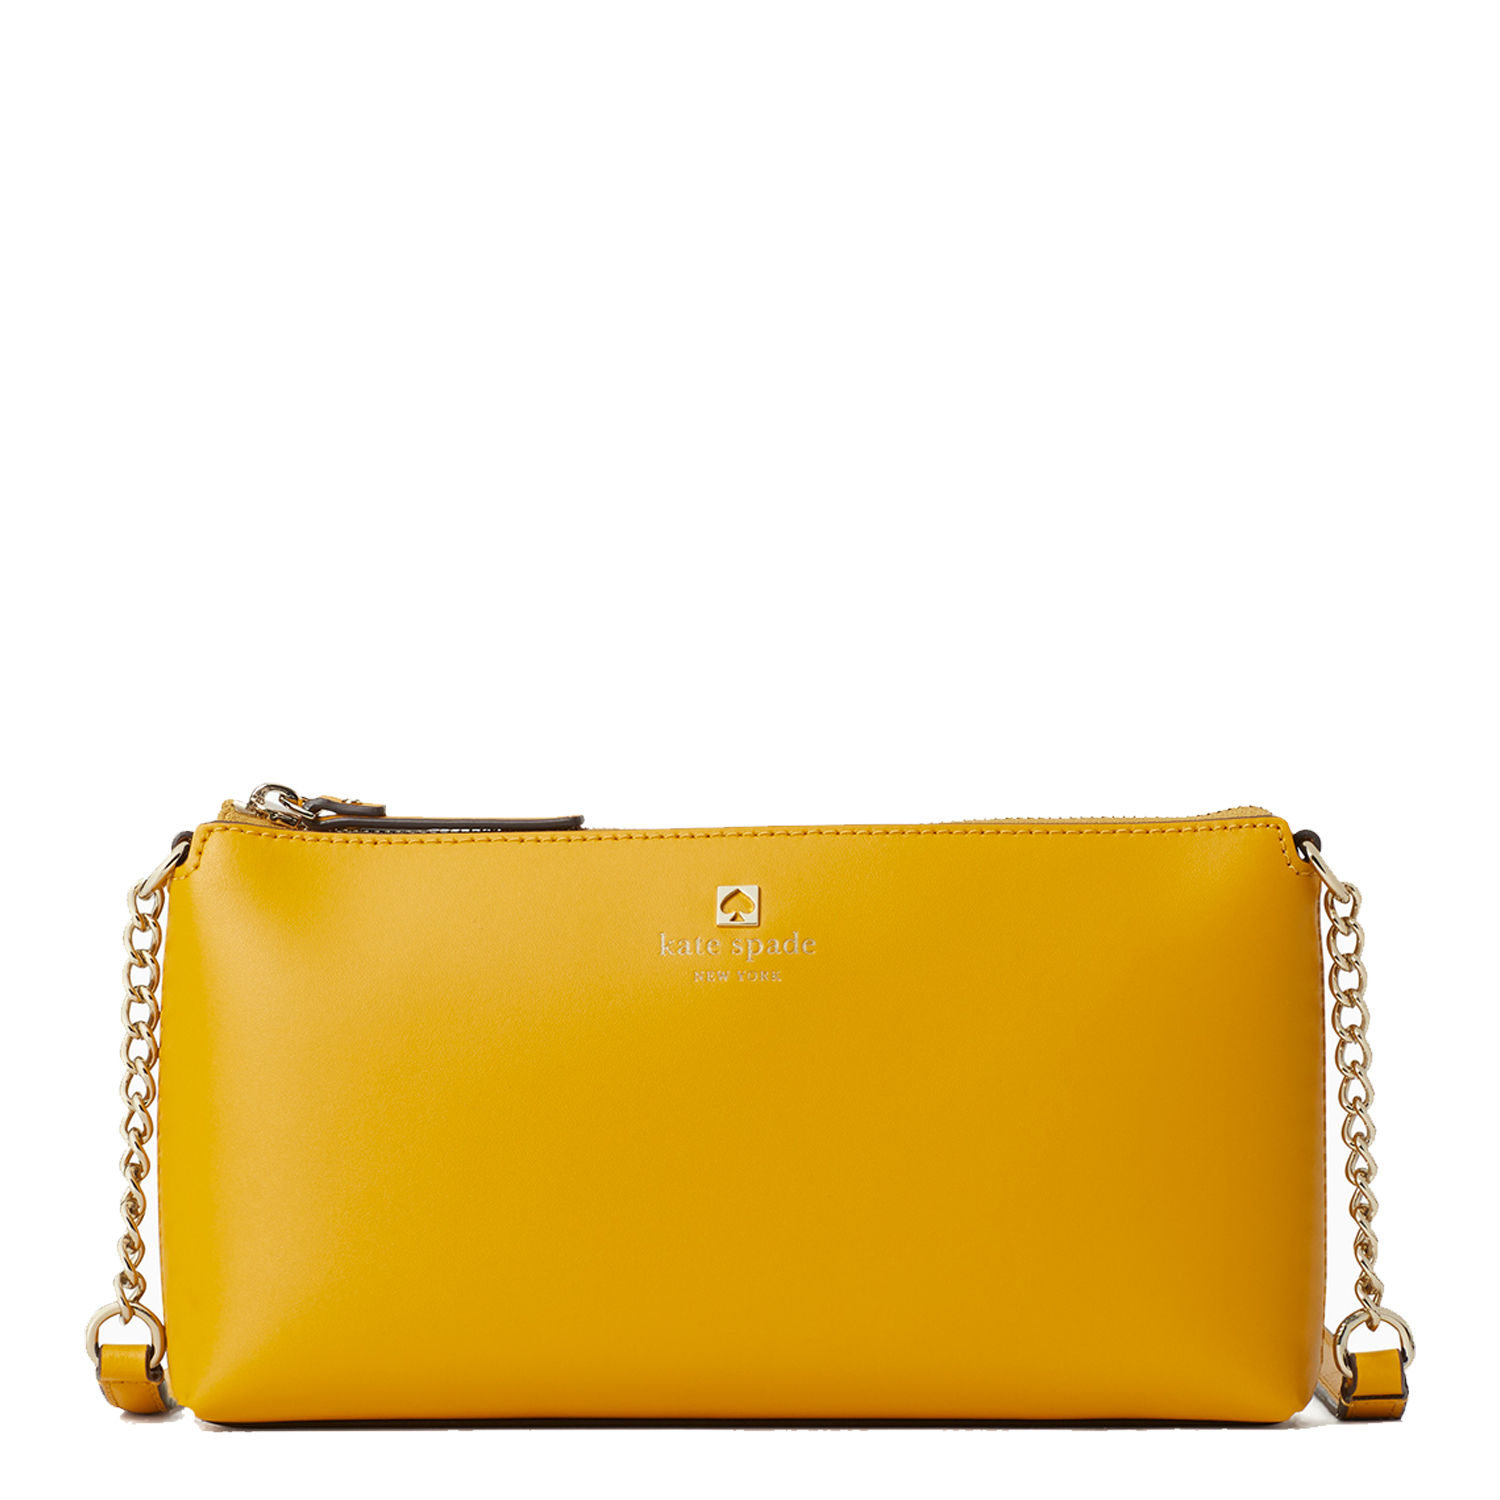 yellow shoulder bag with chain strap